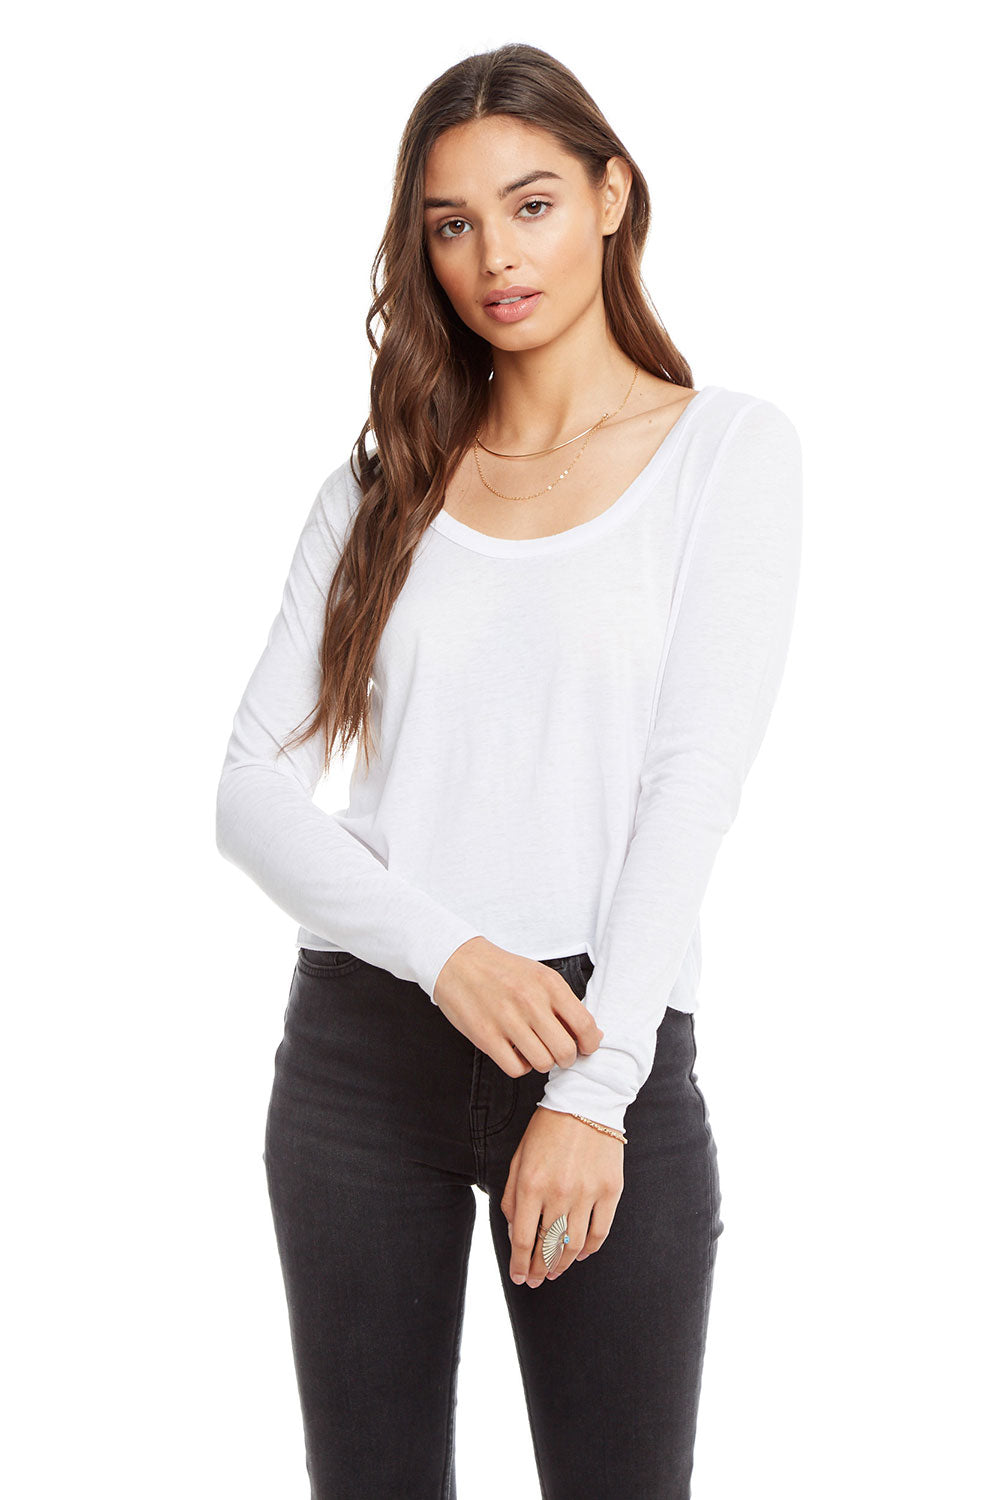 Vintage Jersey Long Sleeve Scoop Neck Crop Tee WOMENS chaserbrand4.myshopify.com